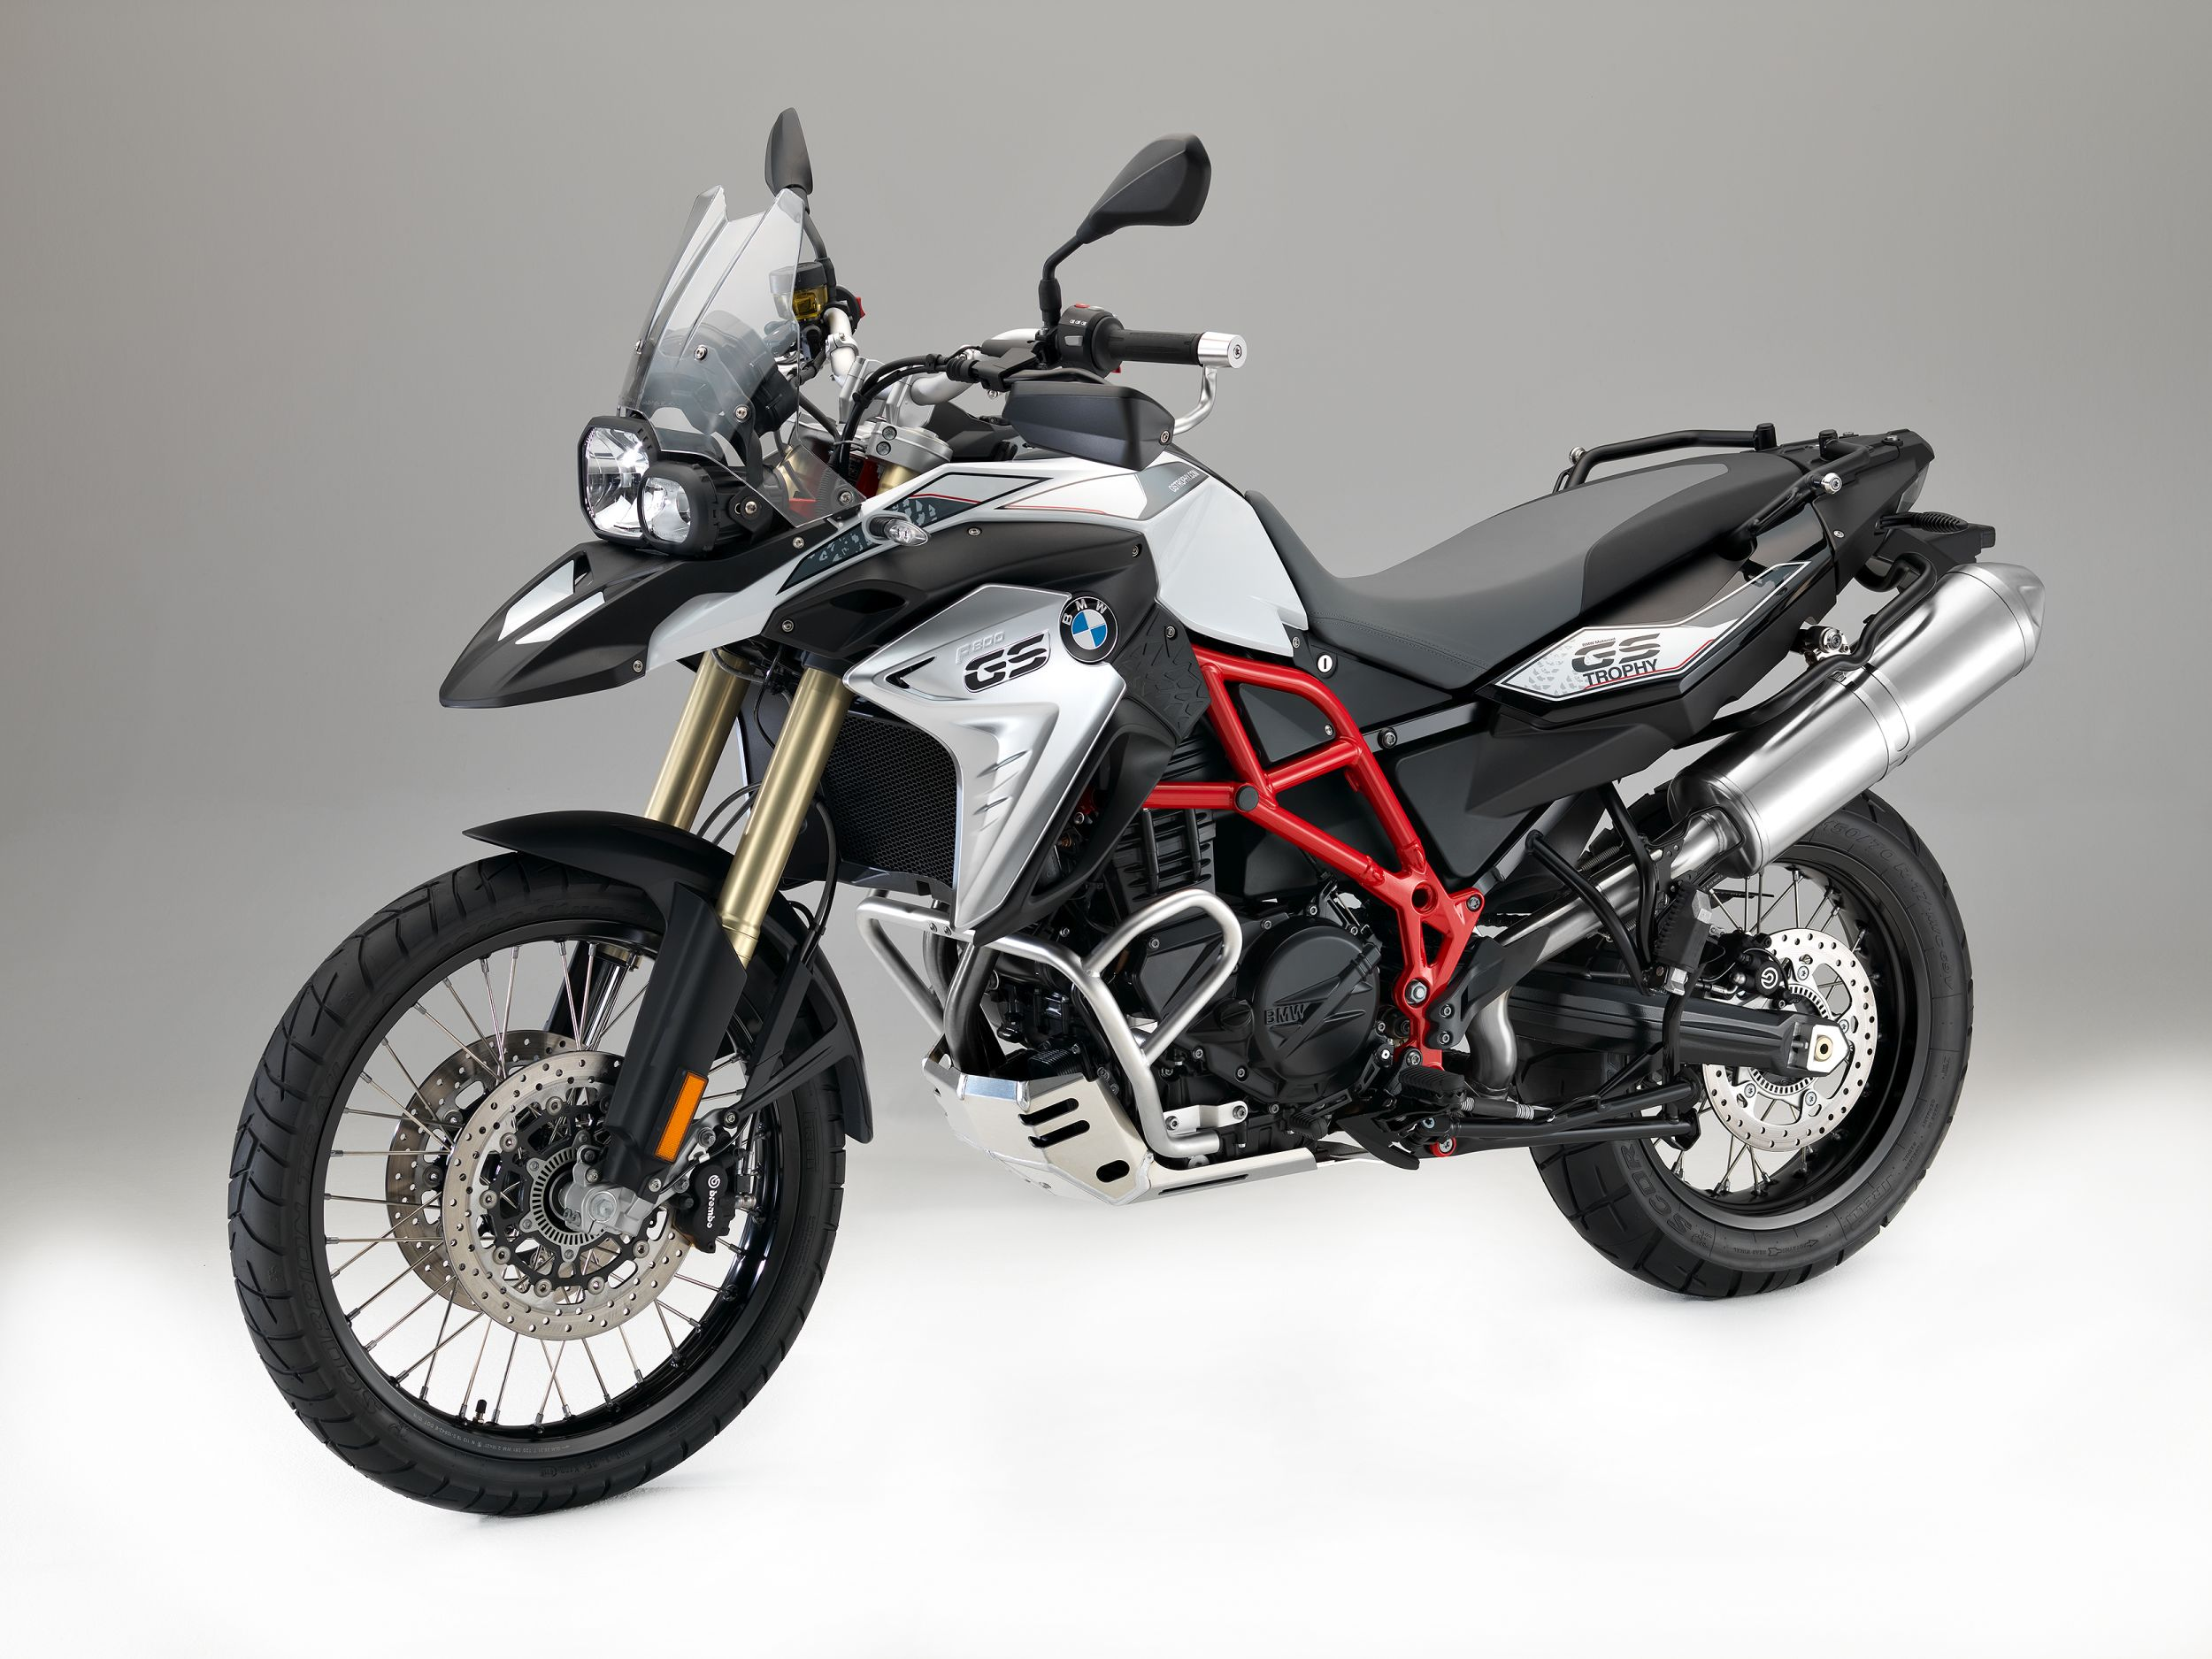 bmw f 800 gs test gebrauchte bilder technische daten. Black Bedroom Furniture Sets. Home Design Ideas